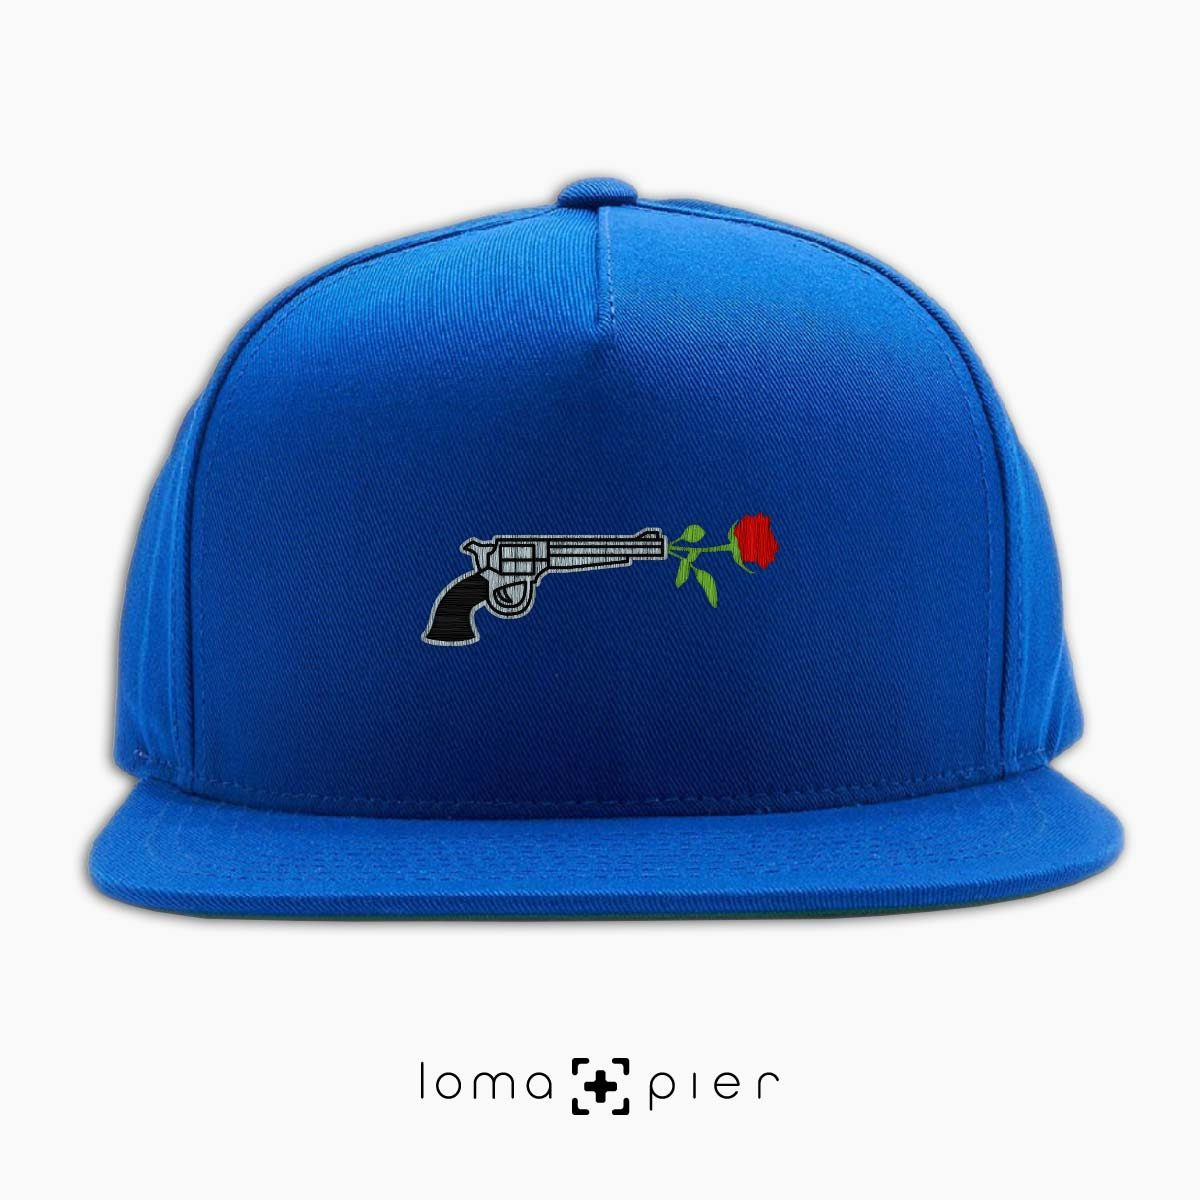 ROSE REVOLVER icon embroidered on a royal blue and red classic snapback hat with multicolor thread by loma+pier hat store